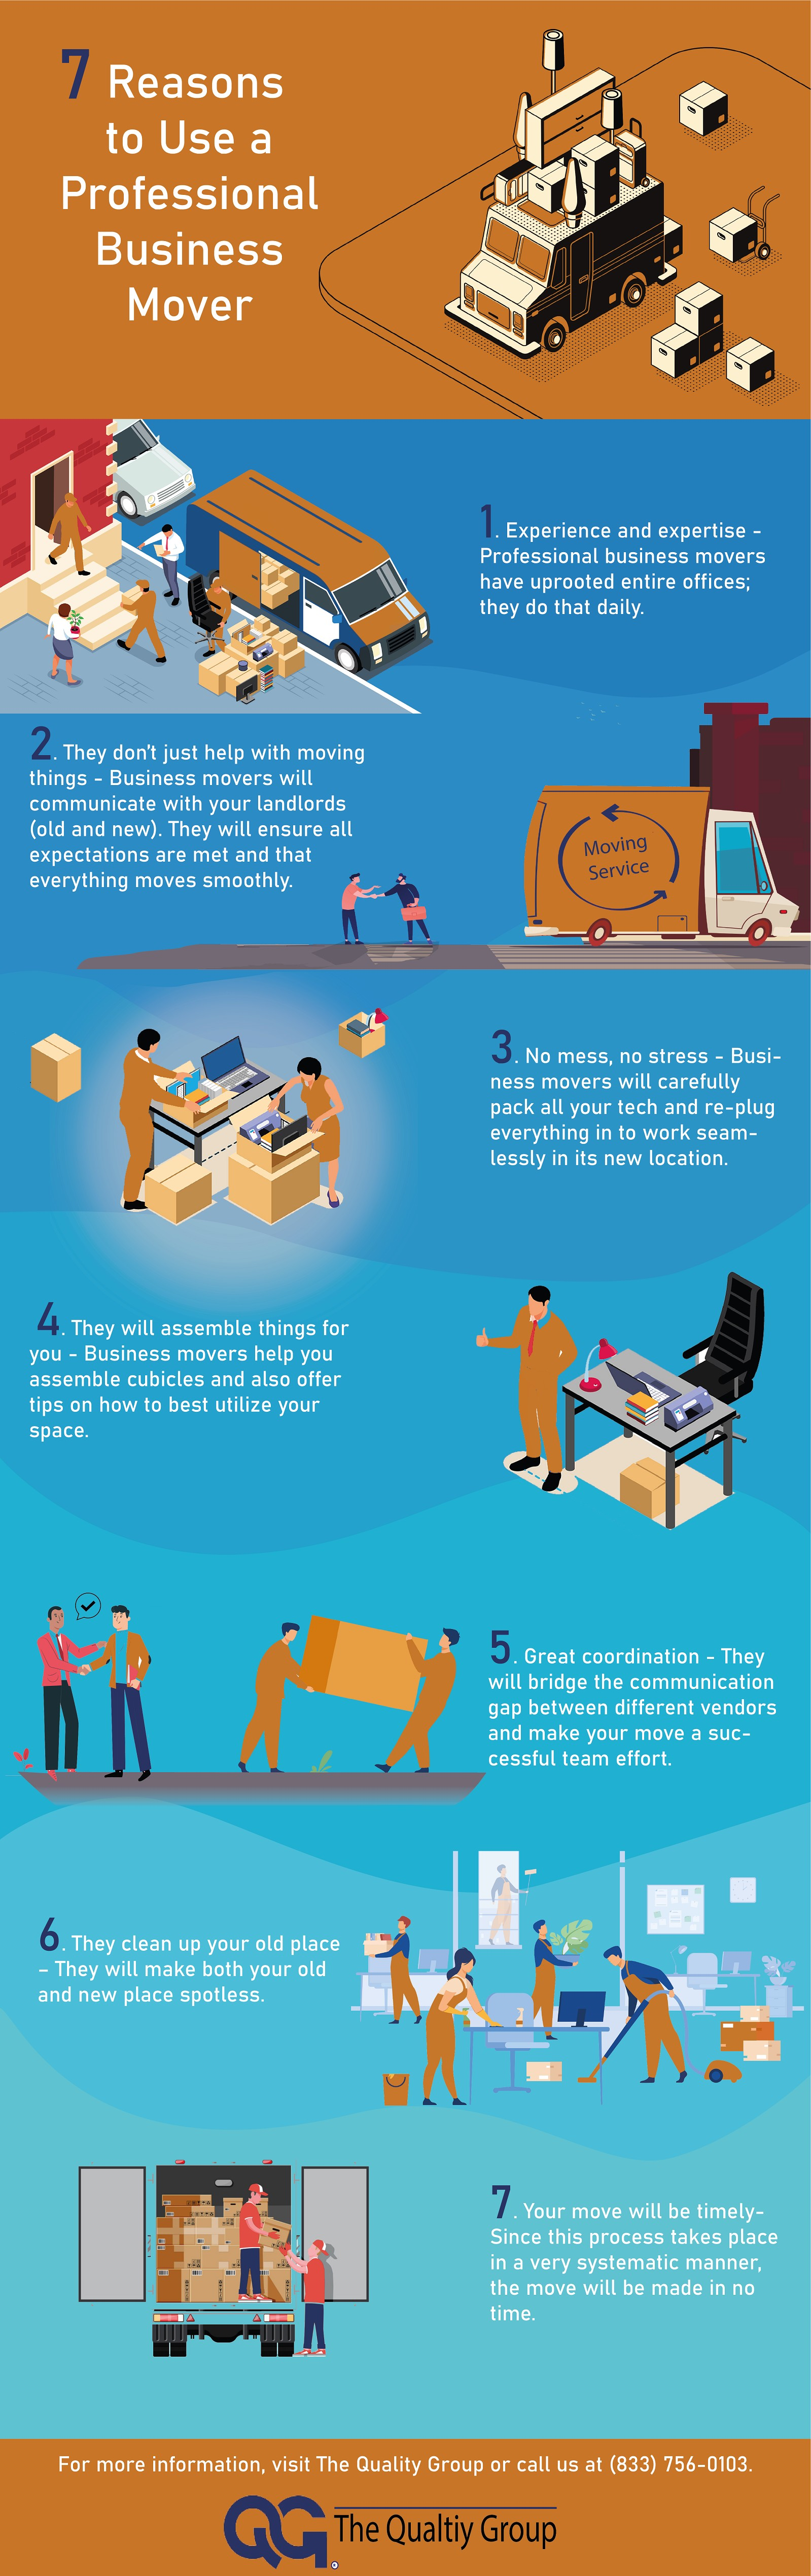 7 Reasons to Use a Professional Business Mover